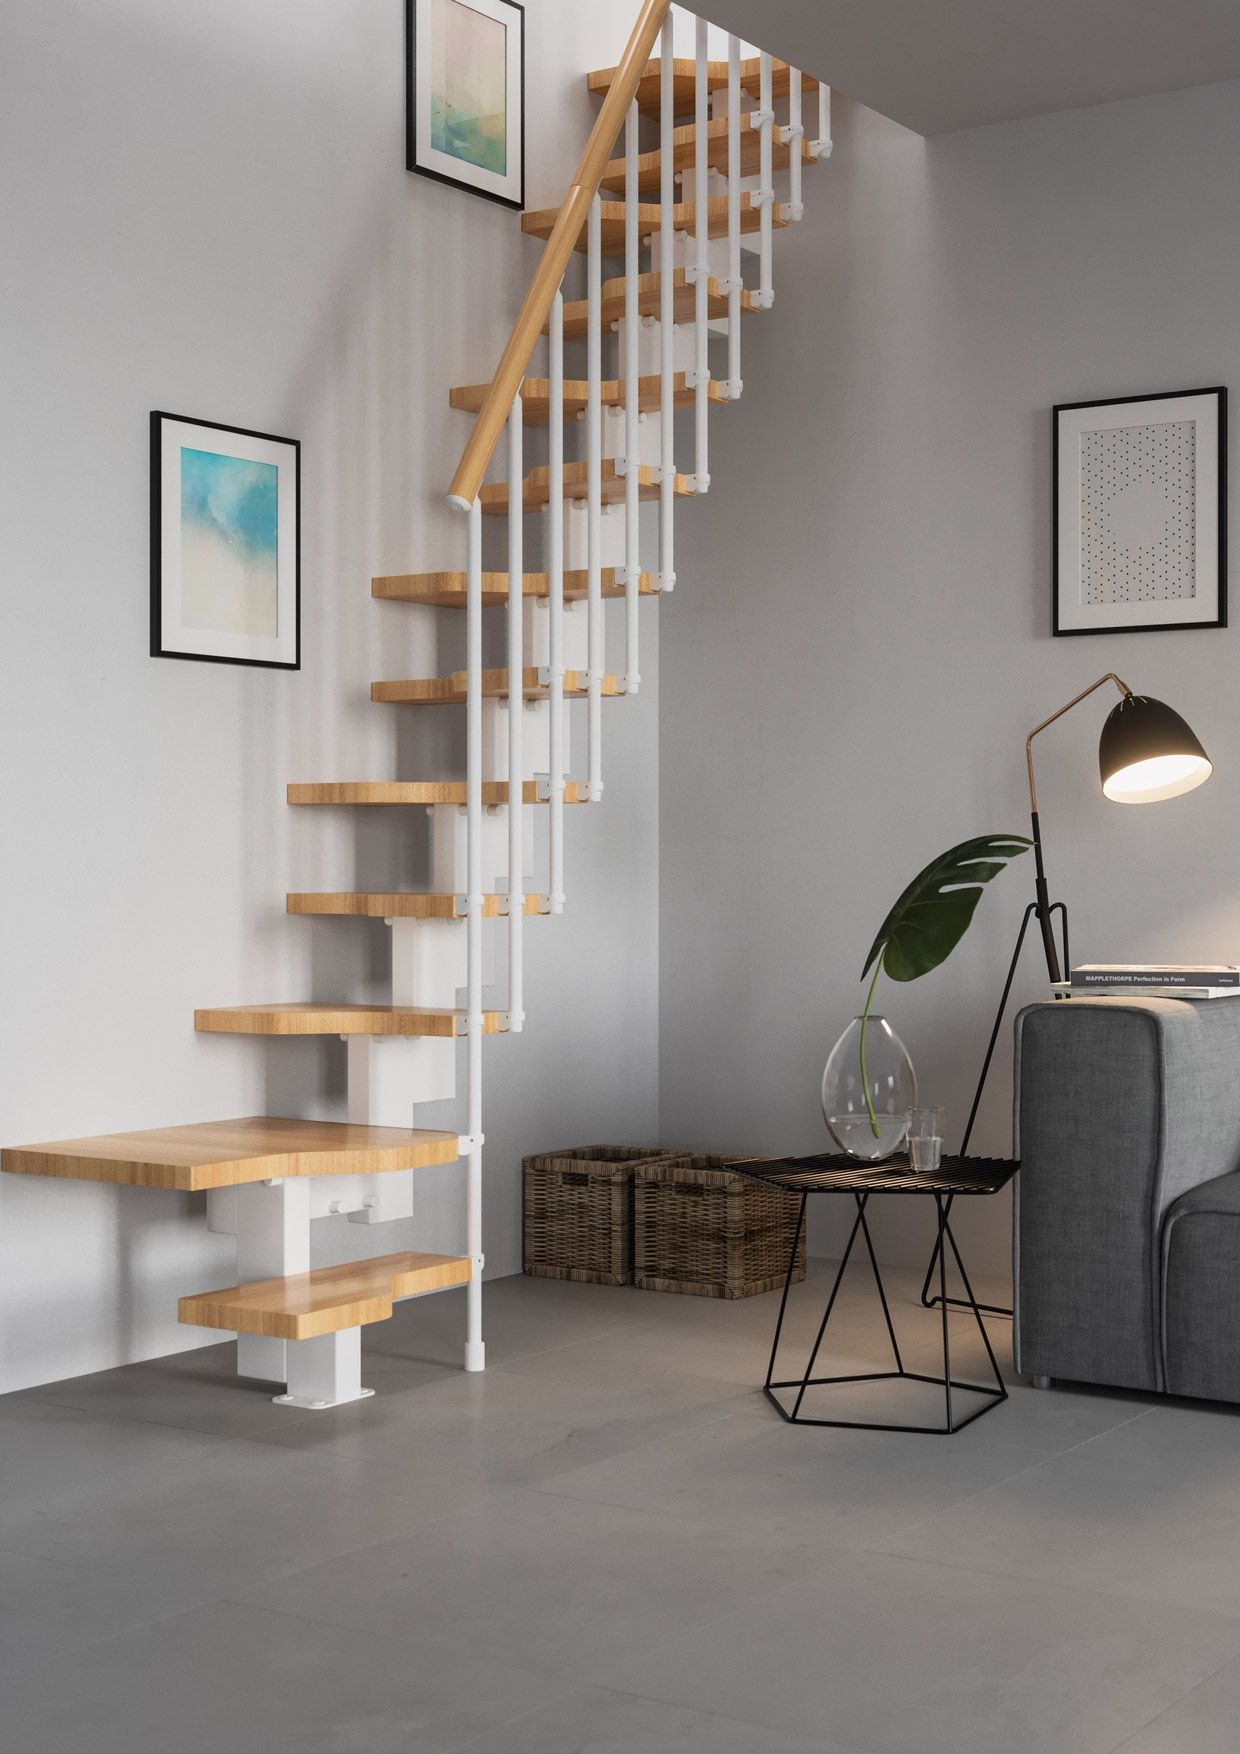 Modern Space Saving Stairs The Alternating Tread Stairs Save   Wood Alternating Tread Stair   Loft Stairs   Thebestwoodfurniture   Stair Railing   Staircase Design   Tread Depth